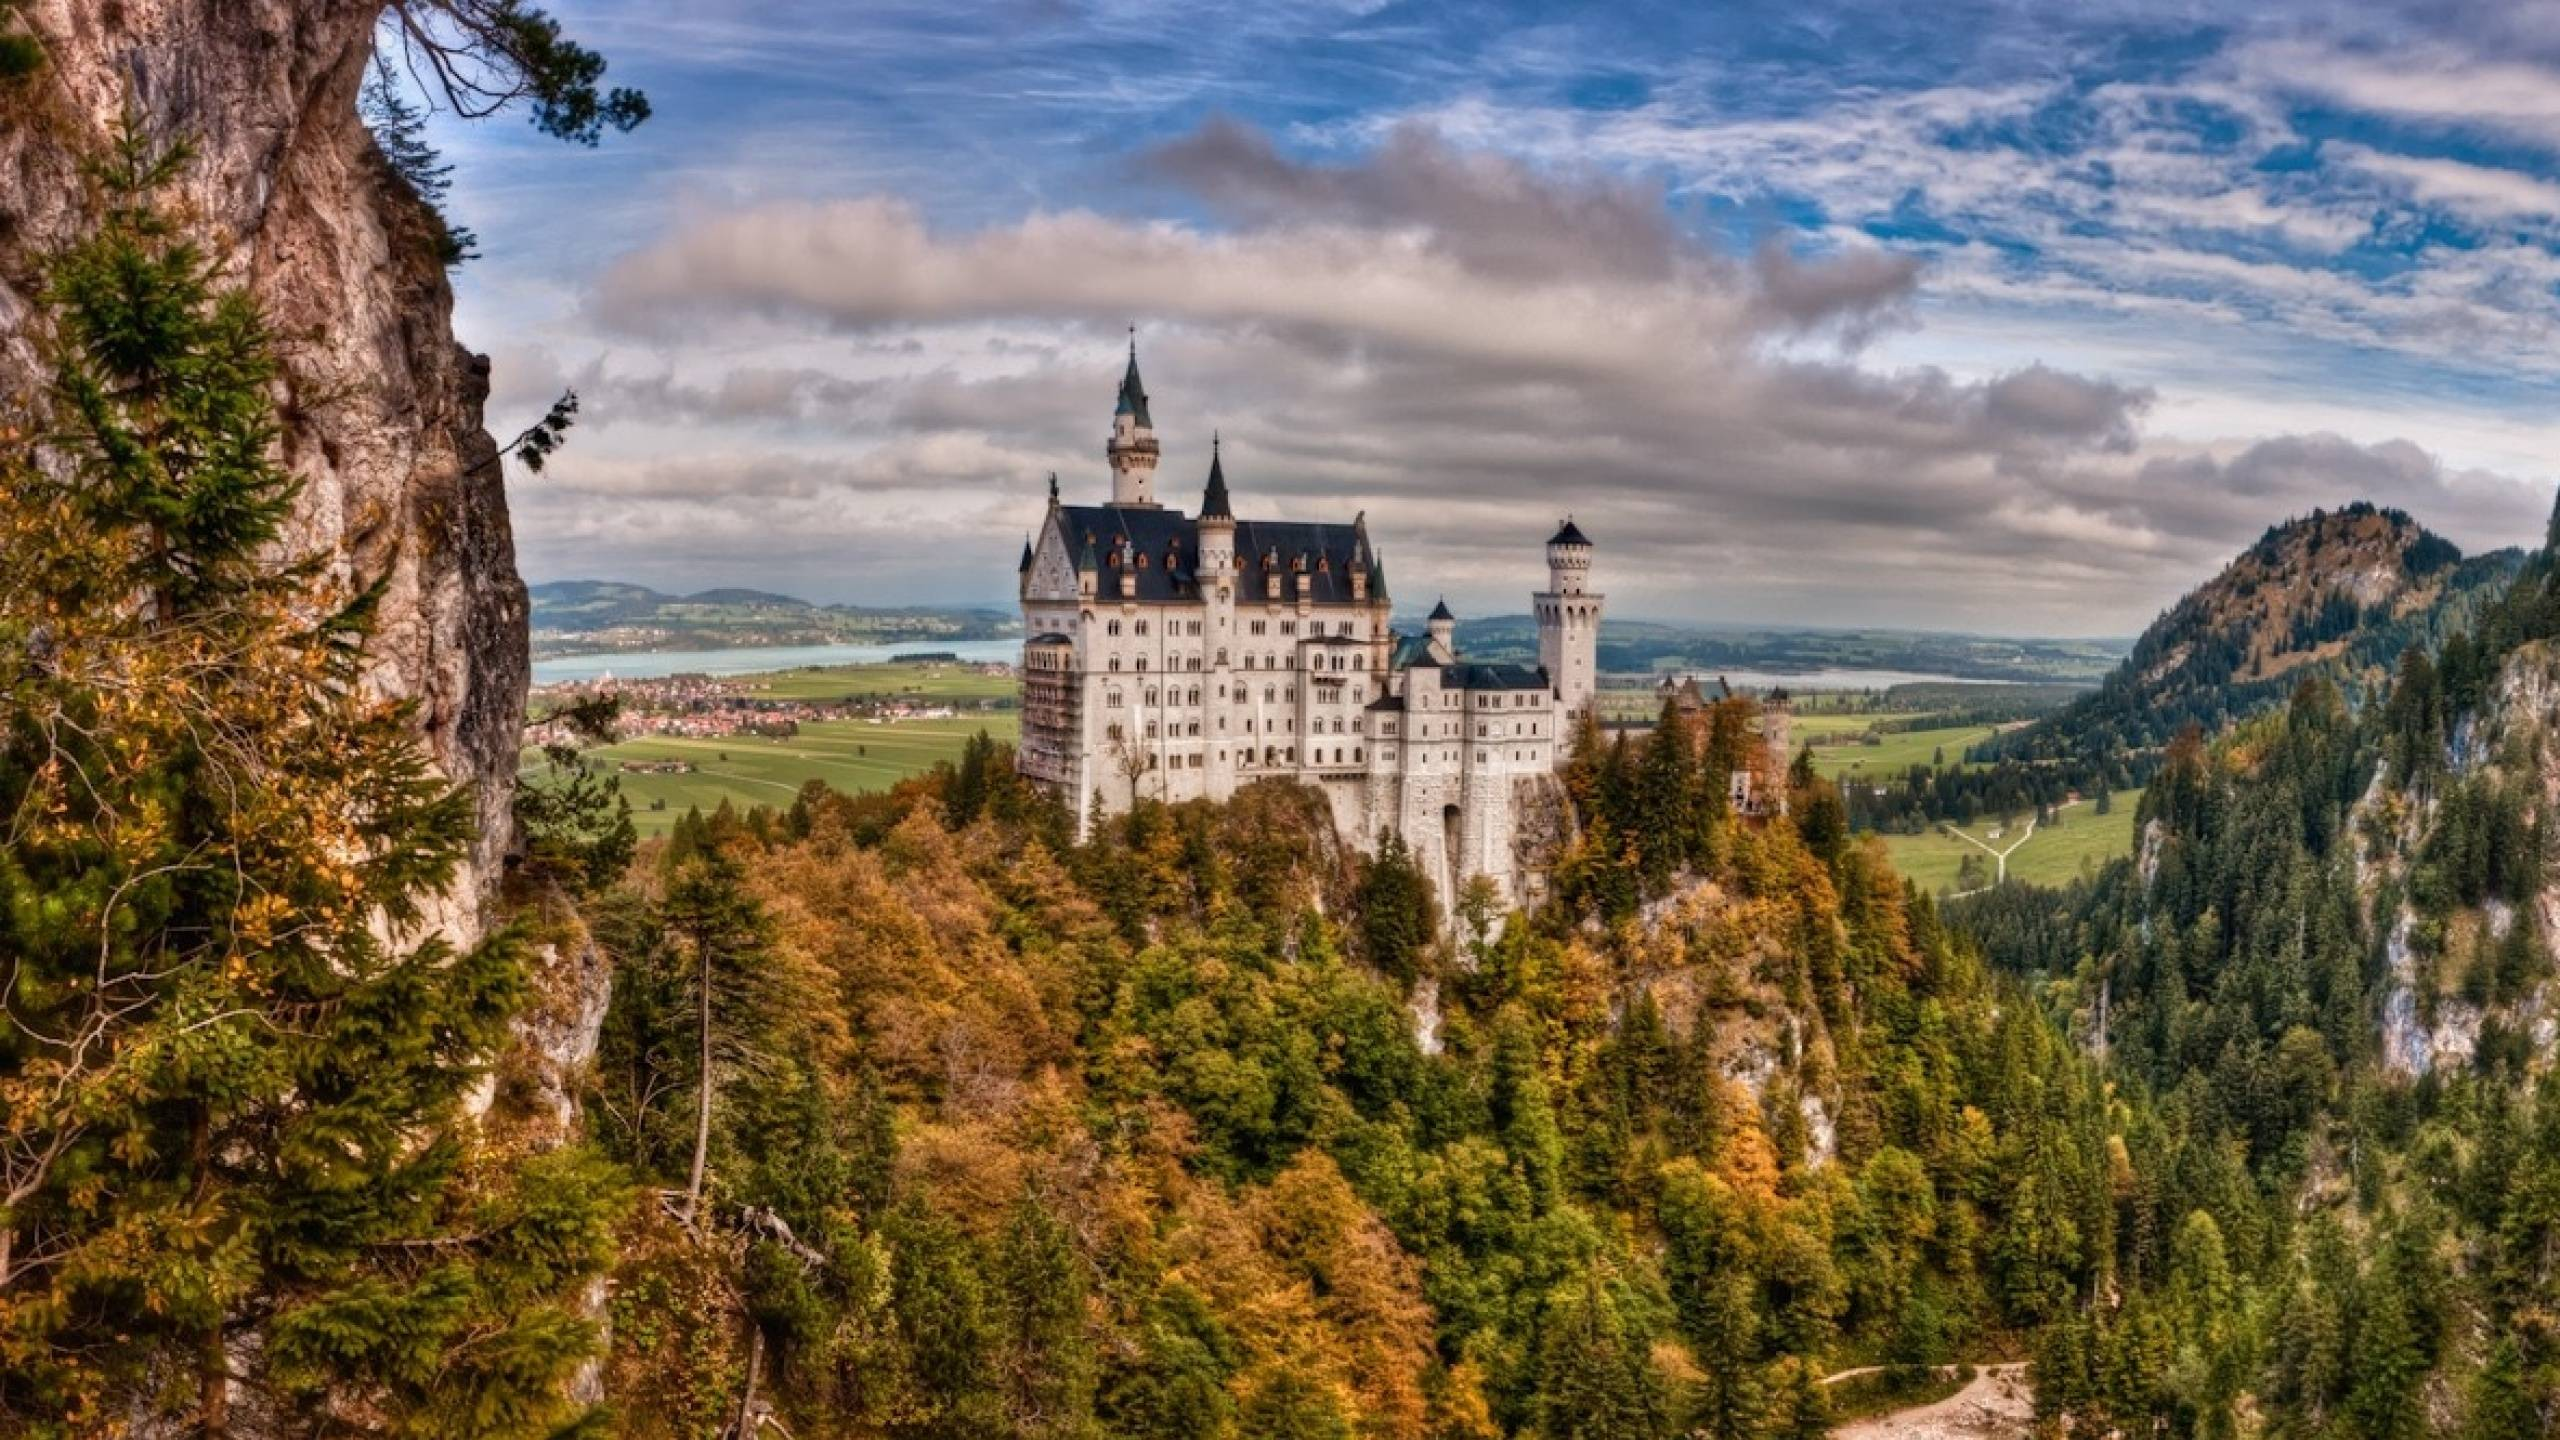 2560x1440 Bavaria Neuschwanstein Castle desktop PC and Mac wallpaper